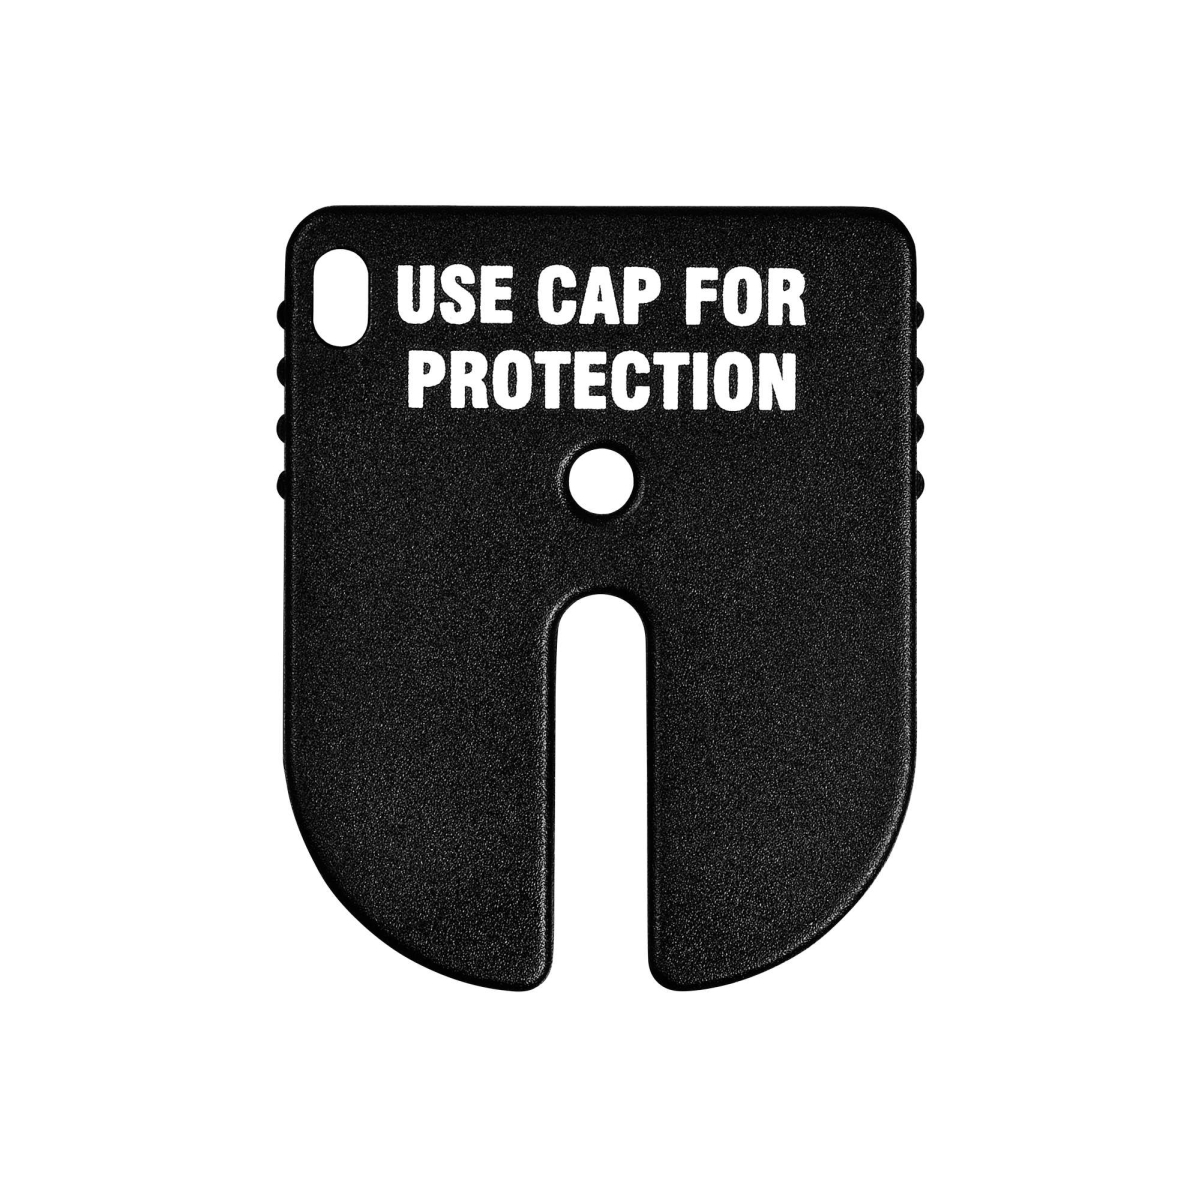 Profoto A-Series Sony Protection Caps